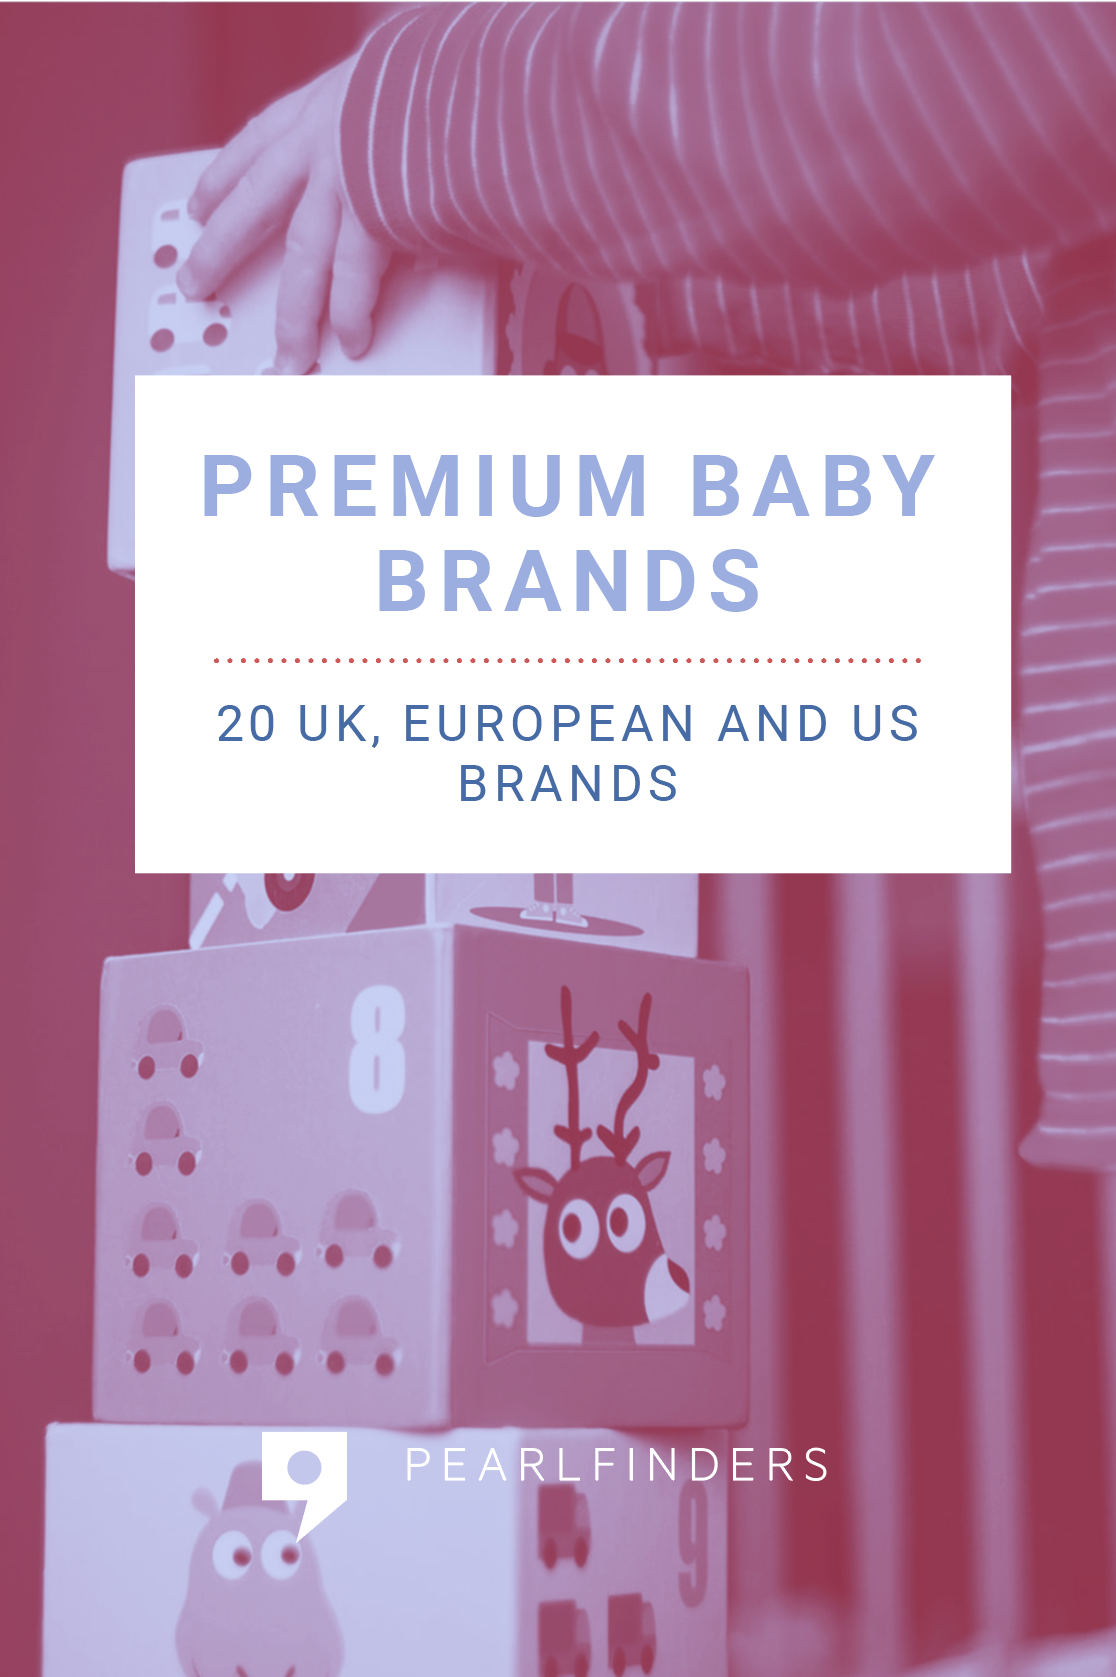 Baby brands cover.png